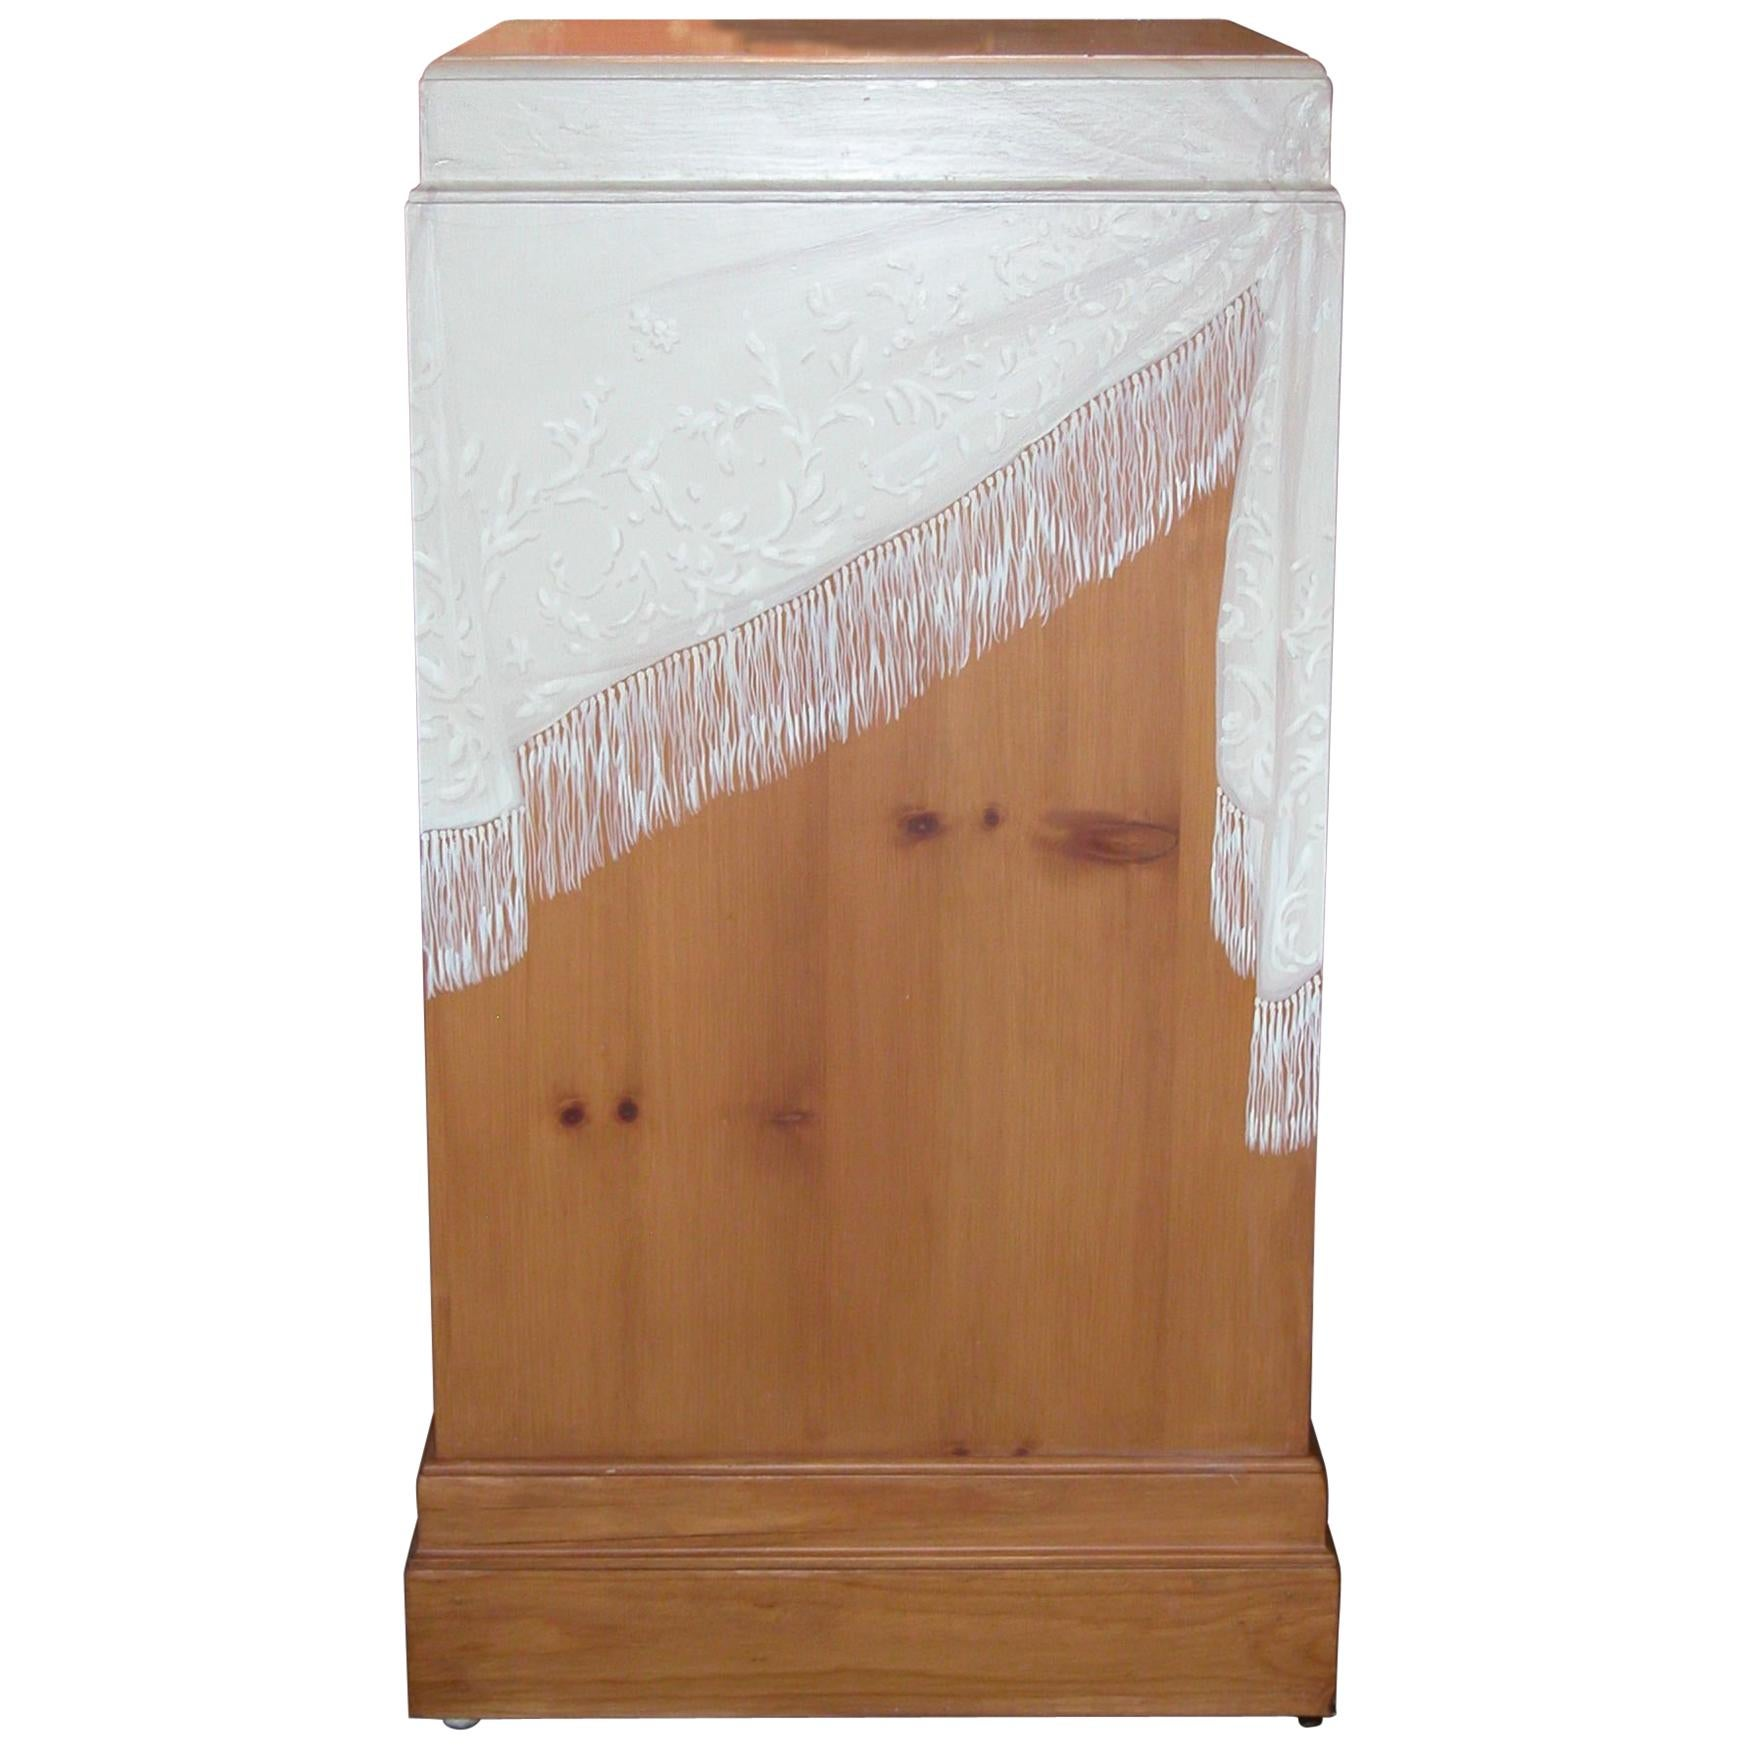 Pair Knotty Pine Square Pedestals with Custom Painted Scarf Designs